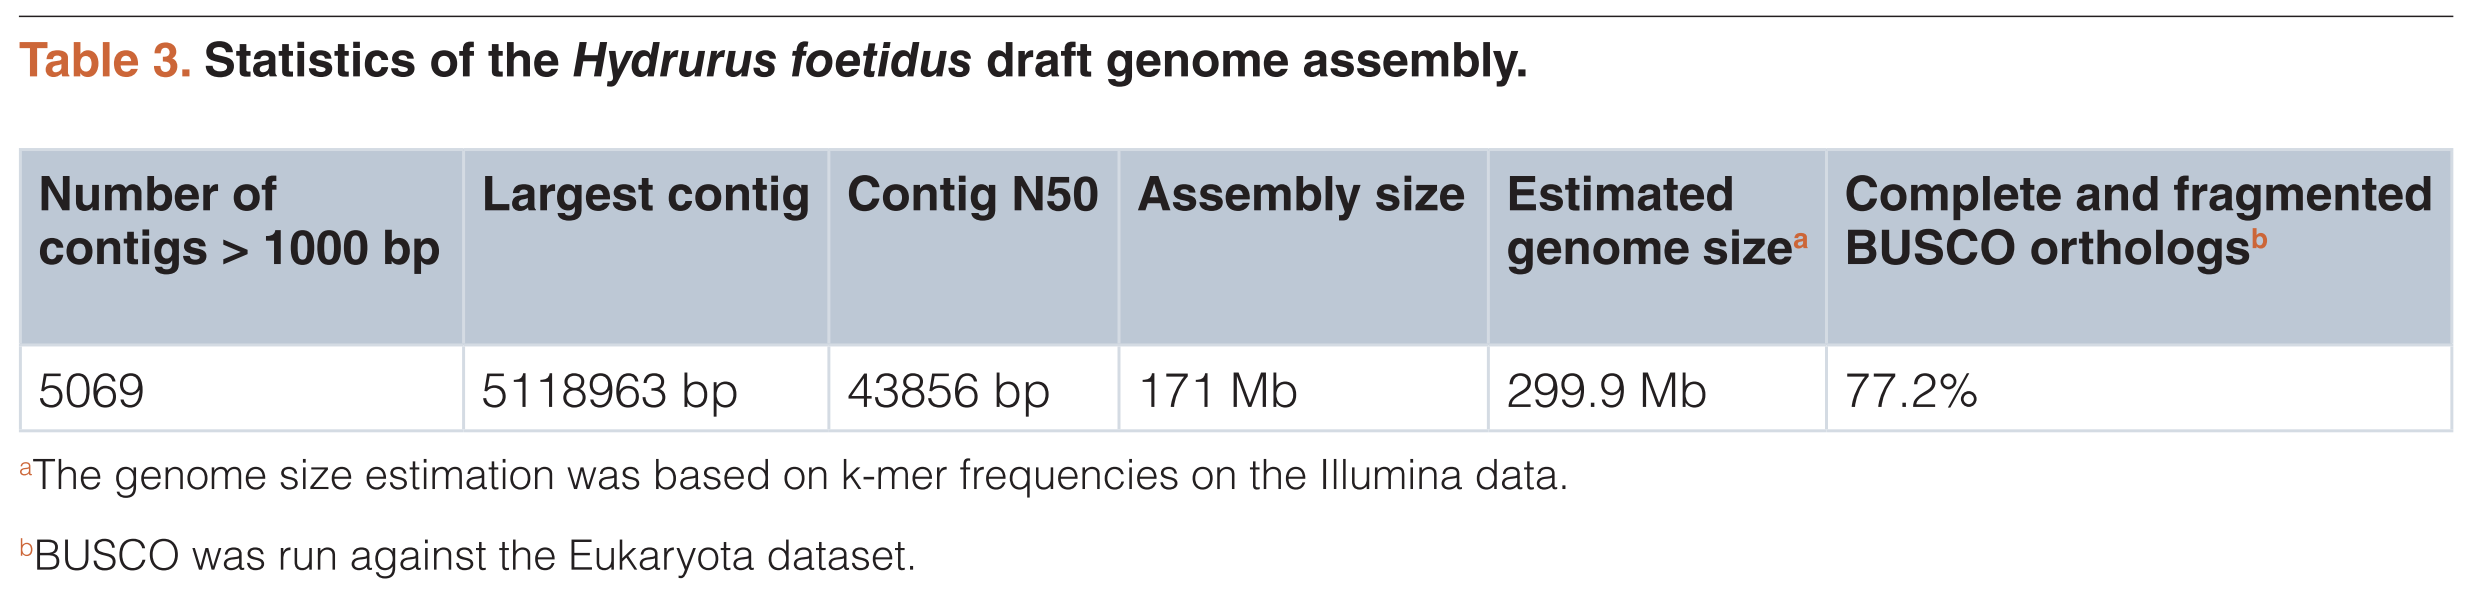 Table 3. Statistics of the Hydrurus foetidus draft genome assembly.